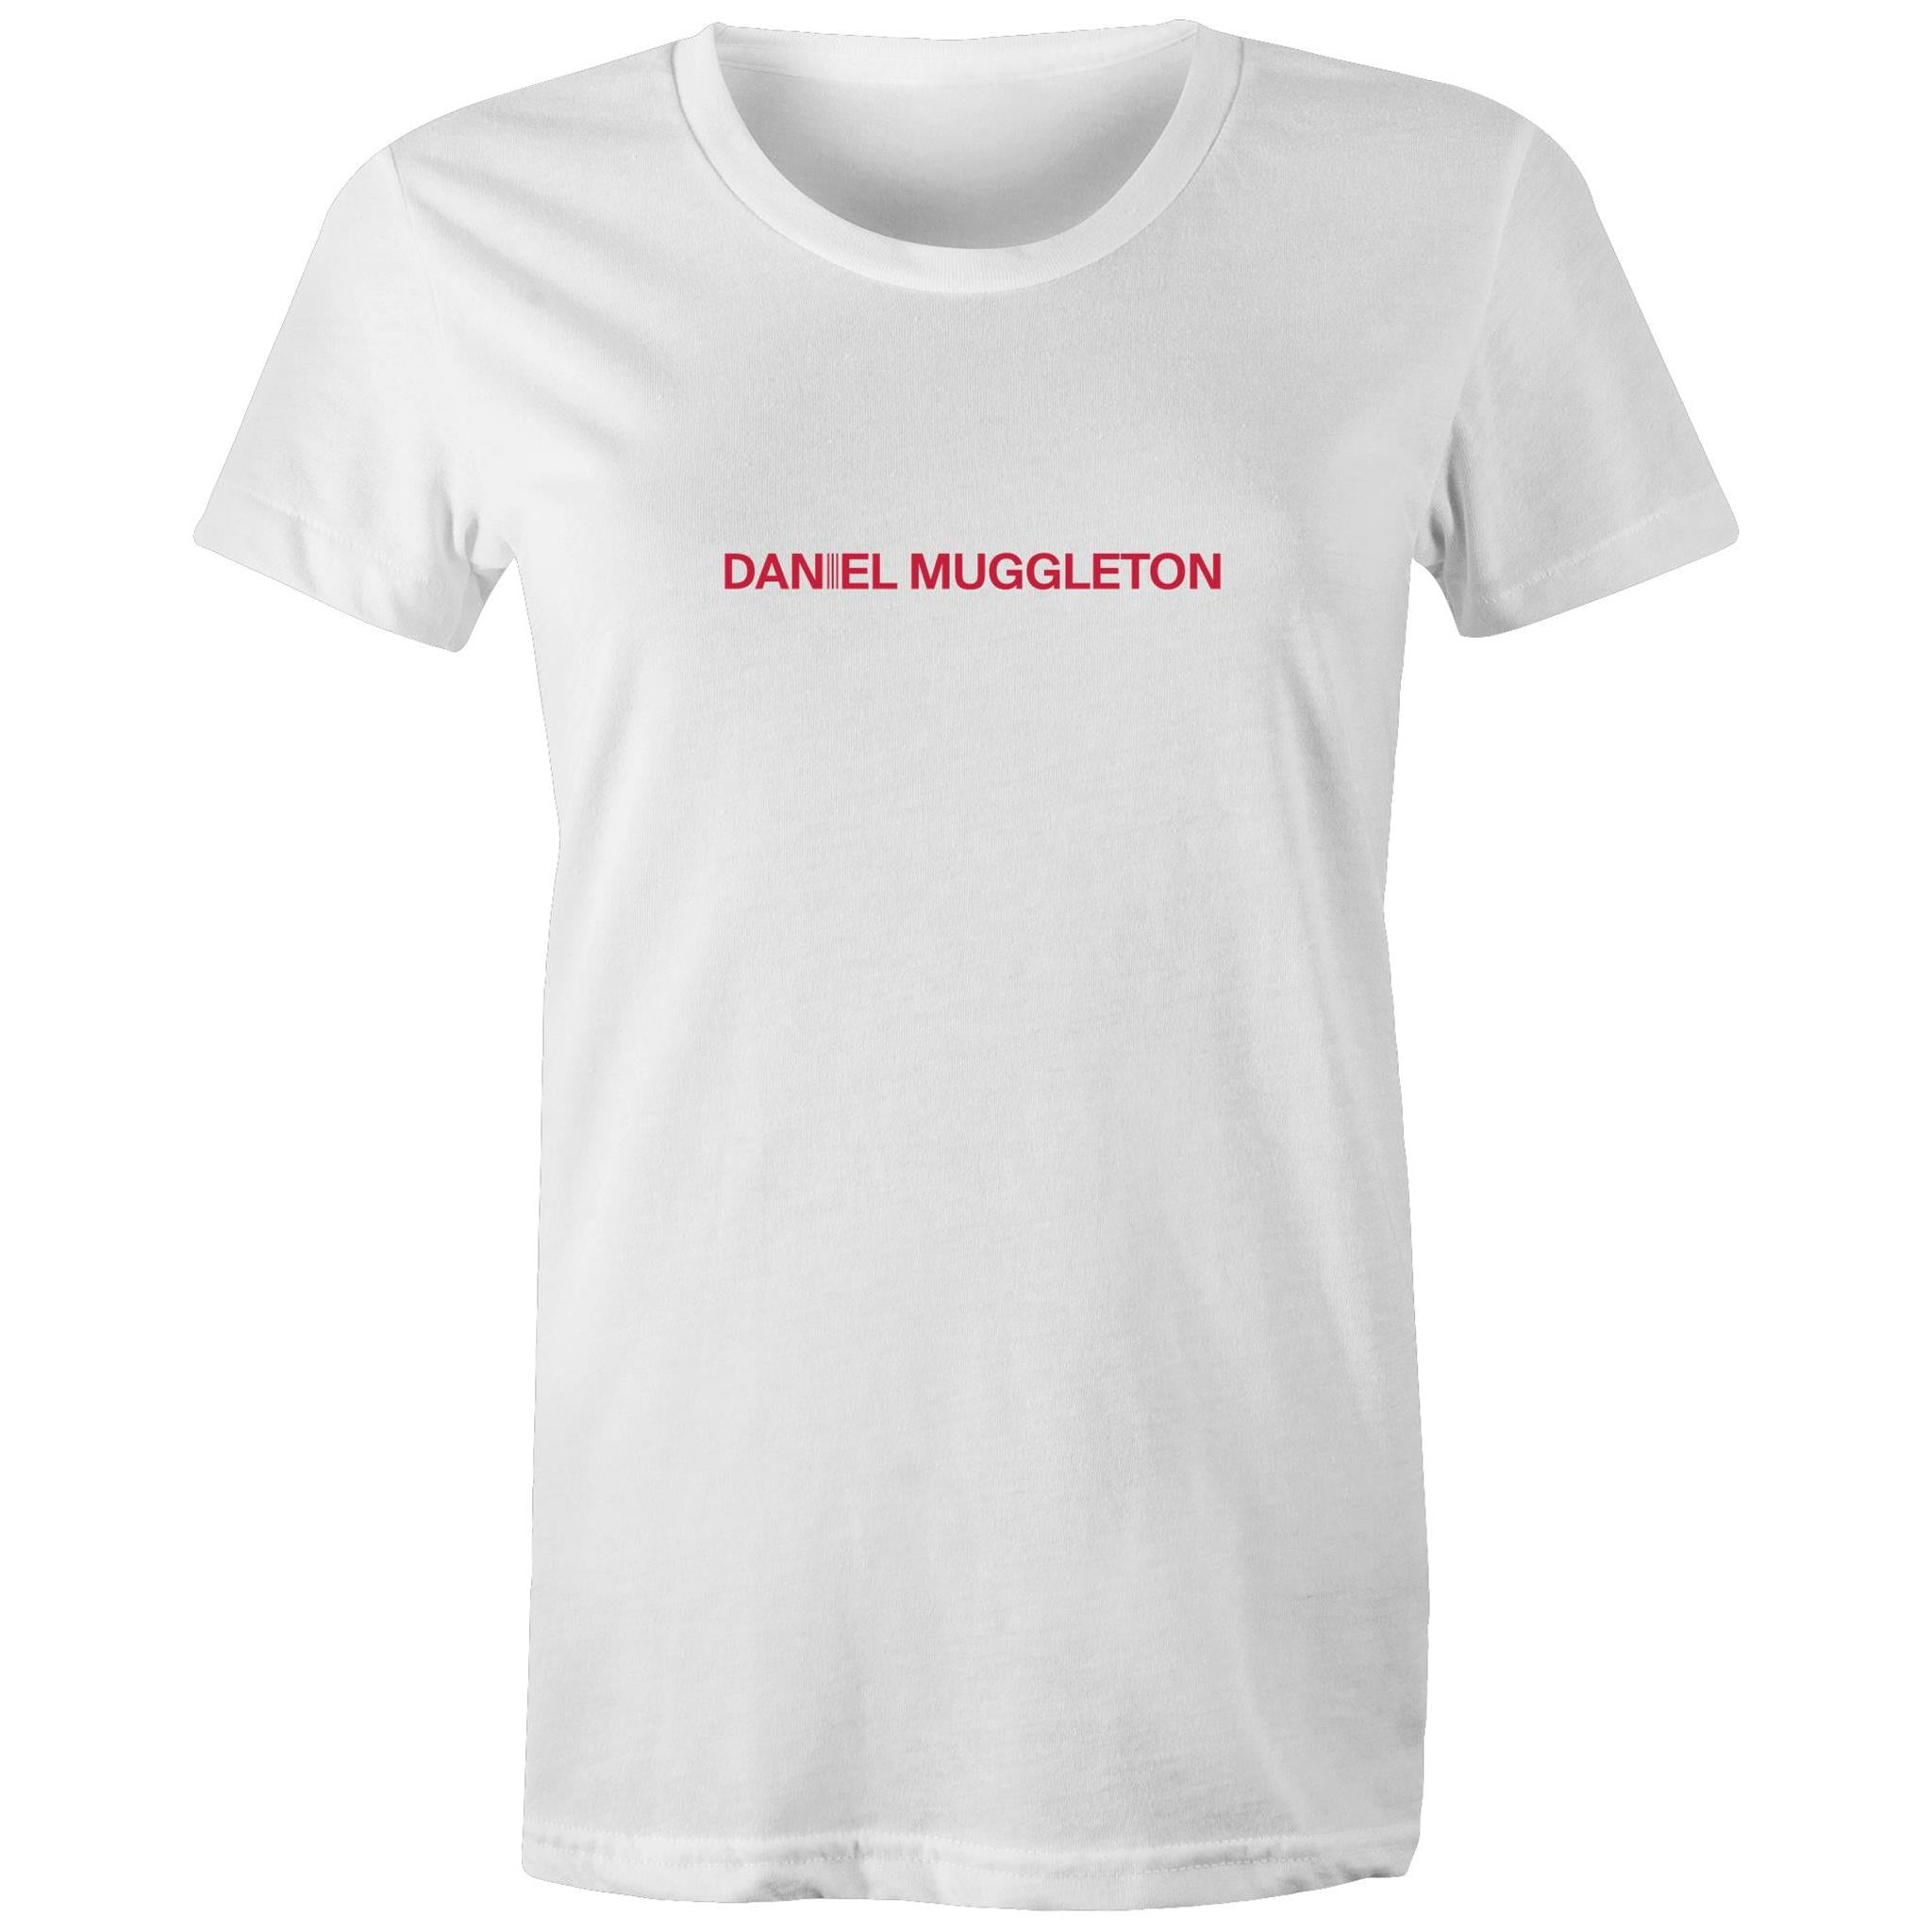 Daniel Muggleton Women's T-Shirt